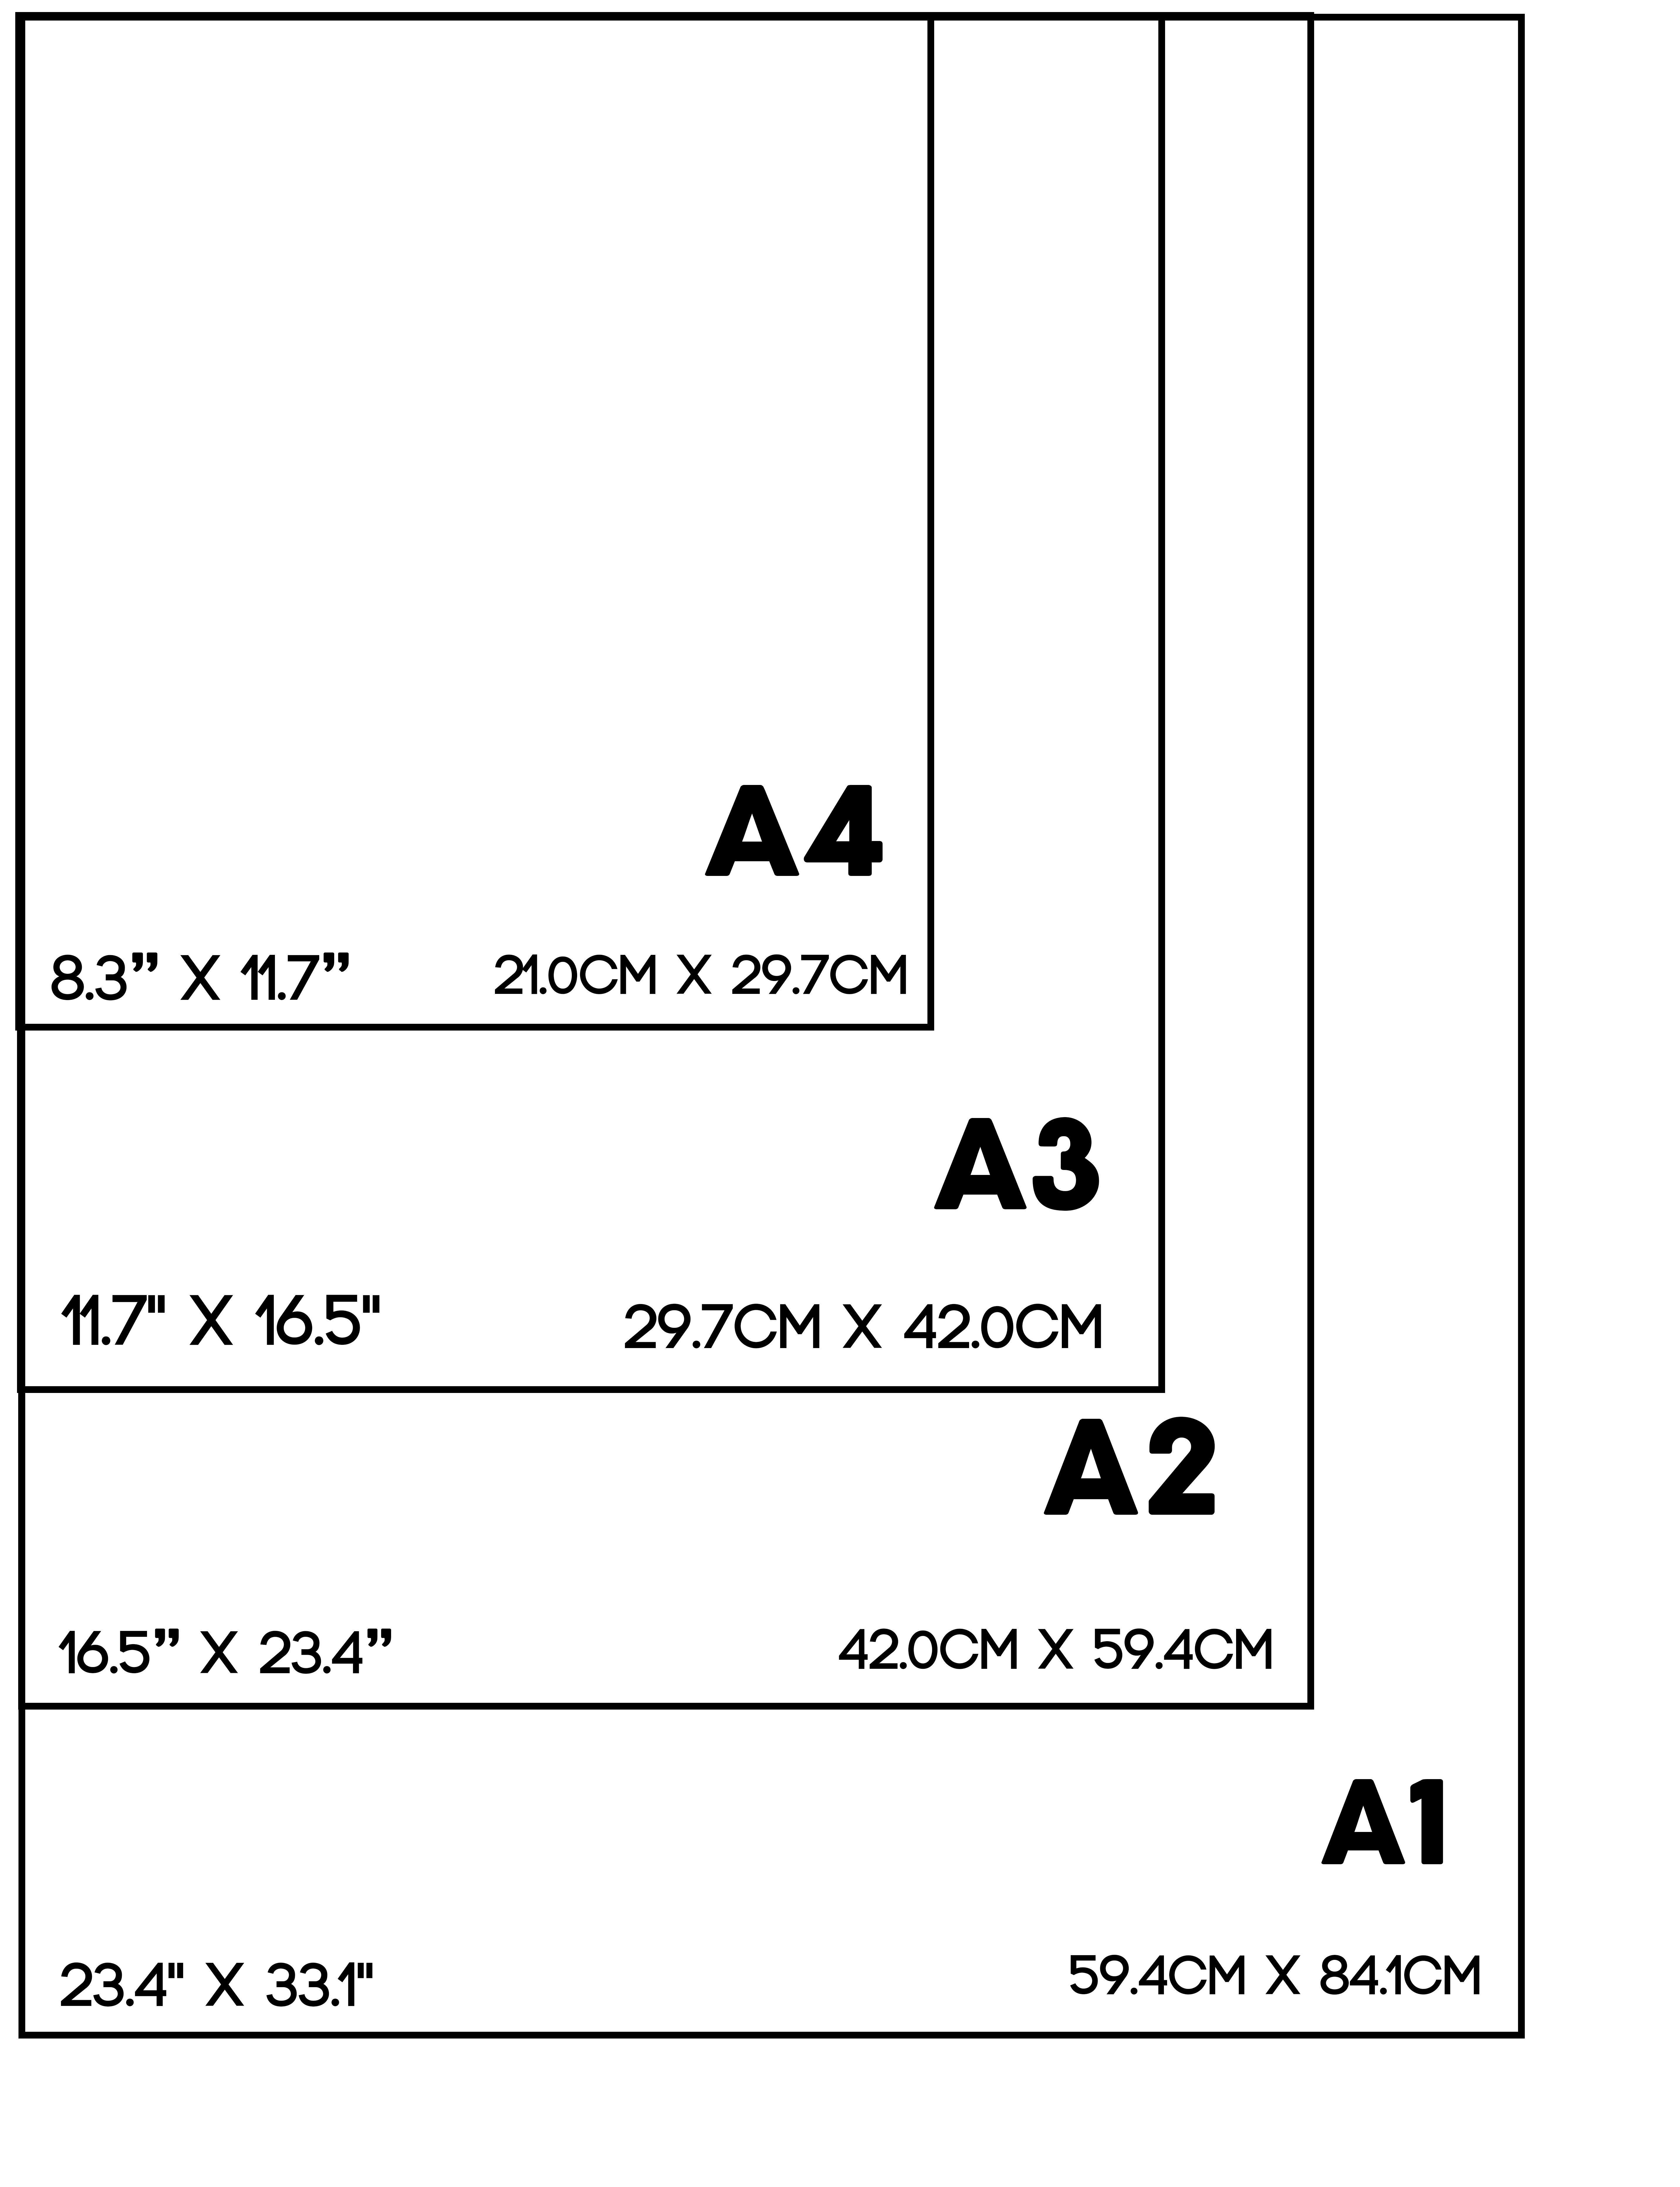 Guide to Standard Photo Print Sizes and Photo Frame Sizes ... - photo#12